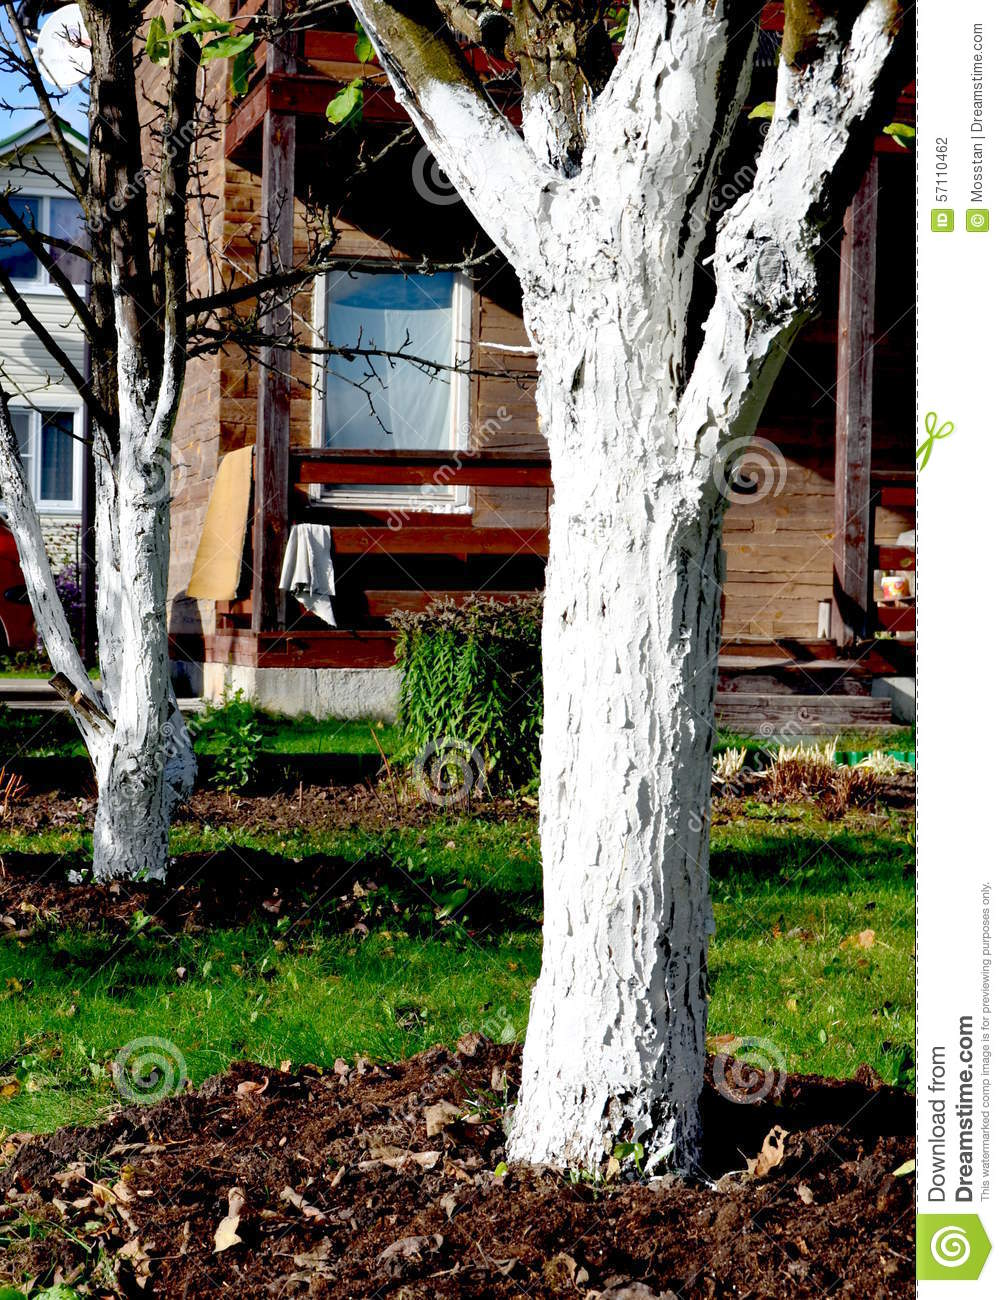 Whitewashing trees in the fall: why and how to do it